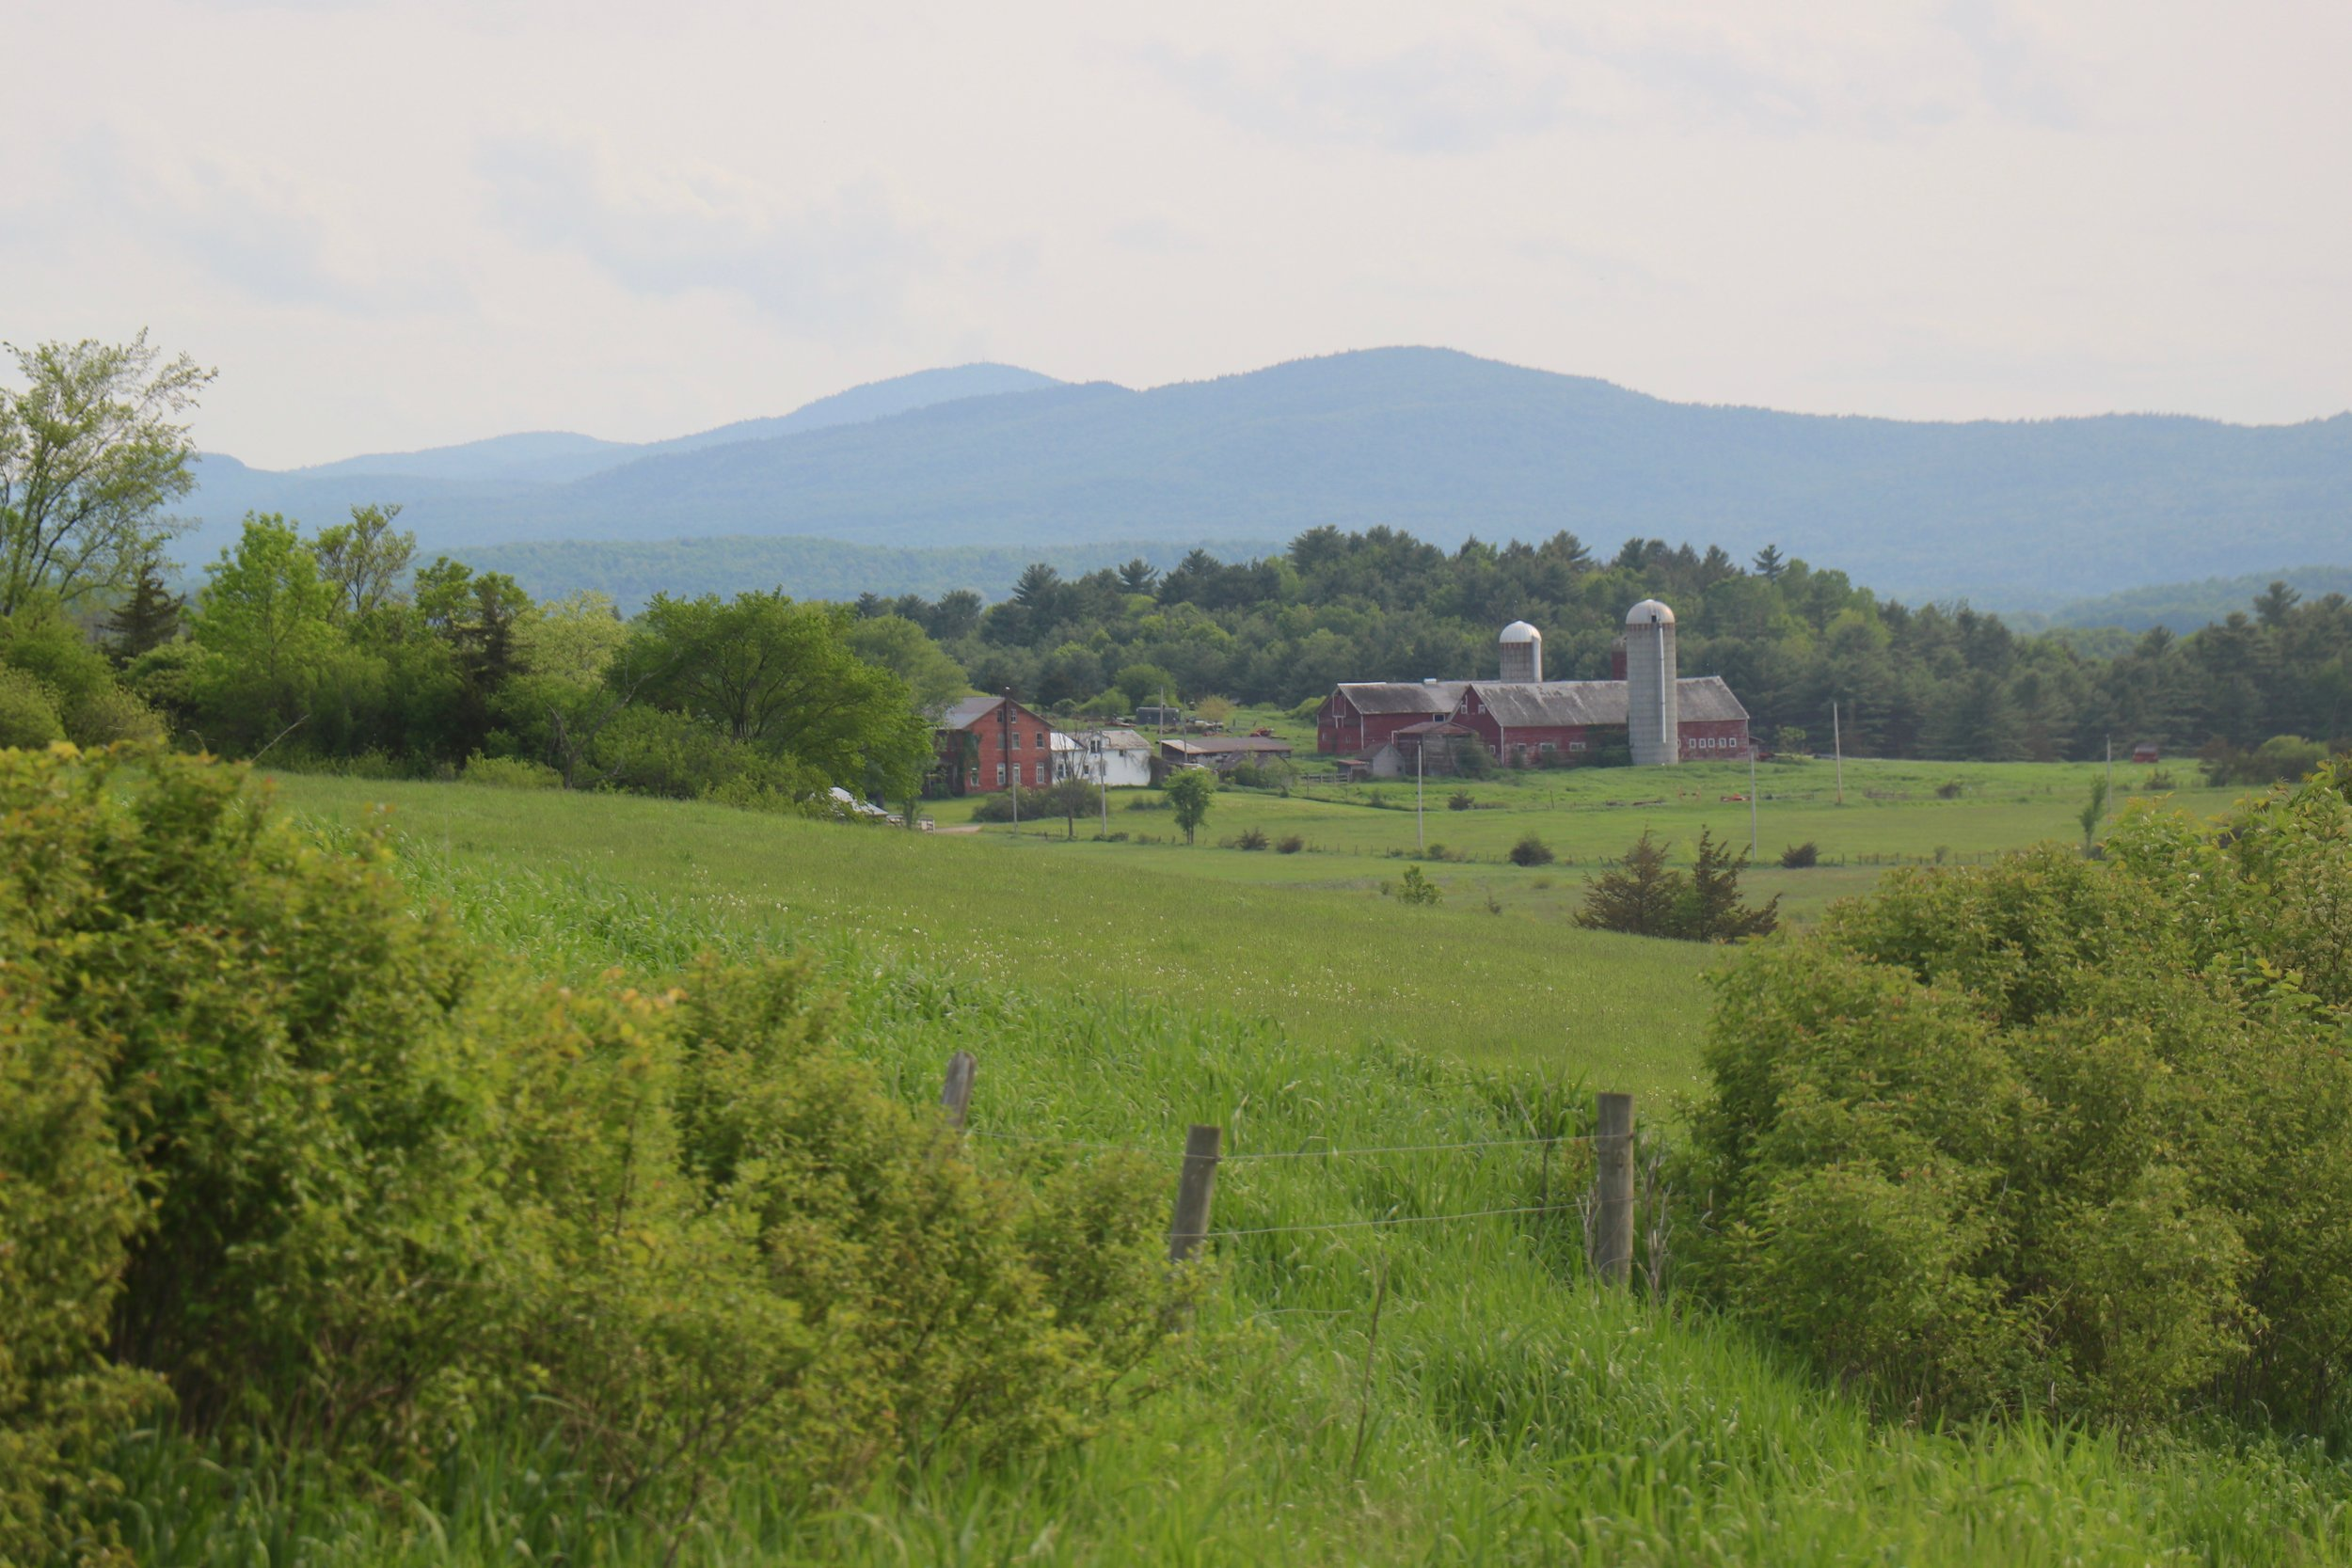 Somewhere between southern and northern Vermont.